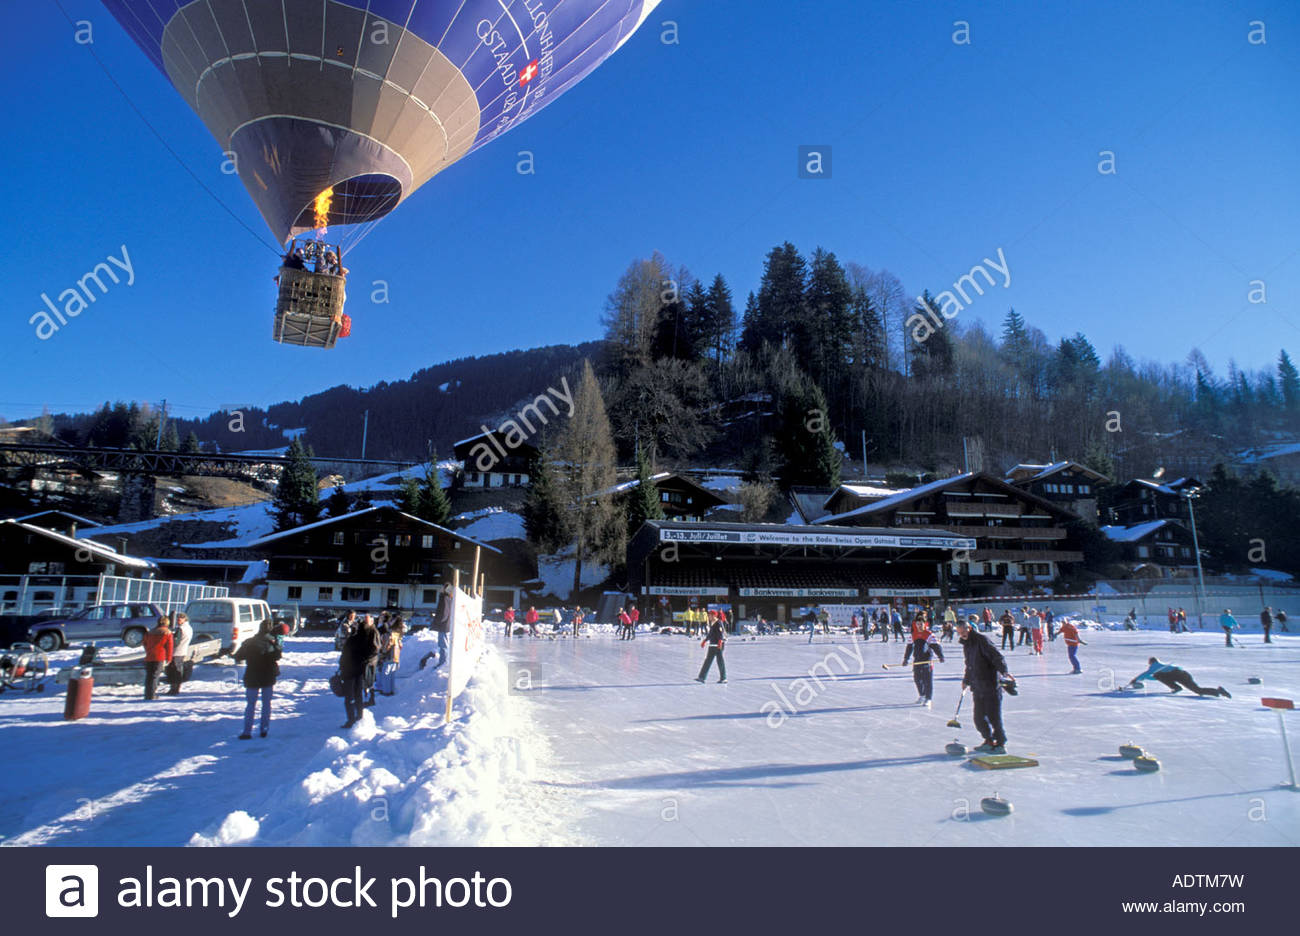 curling rink and hot air balloon in gstaad ski resort, switzerland